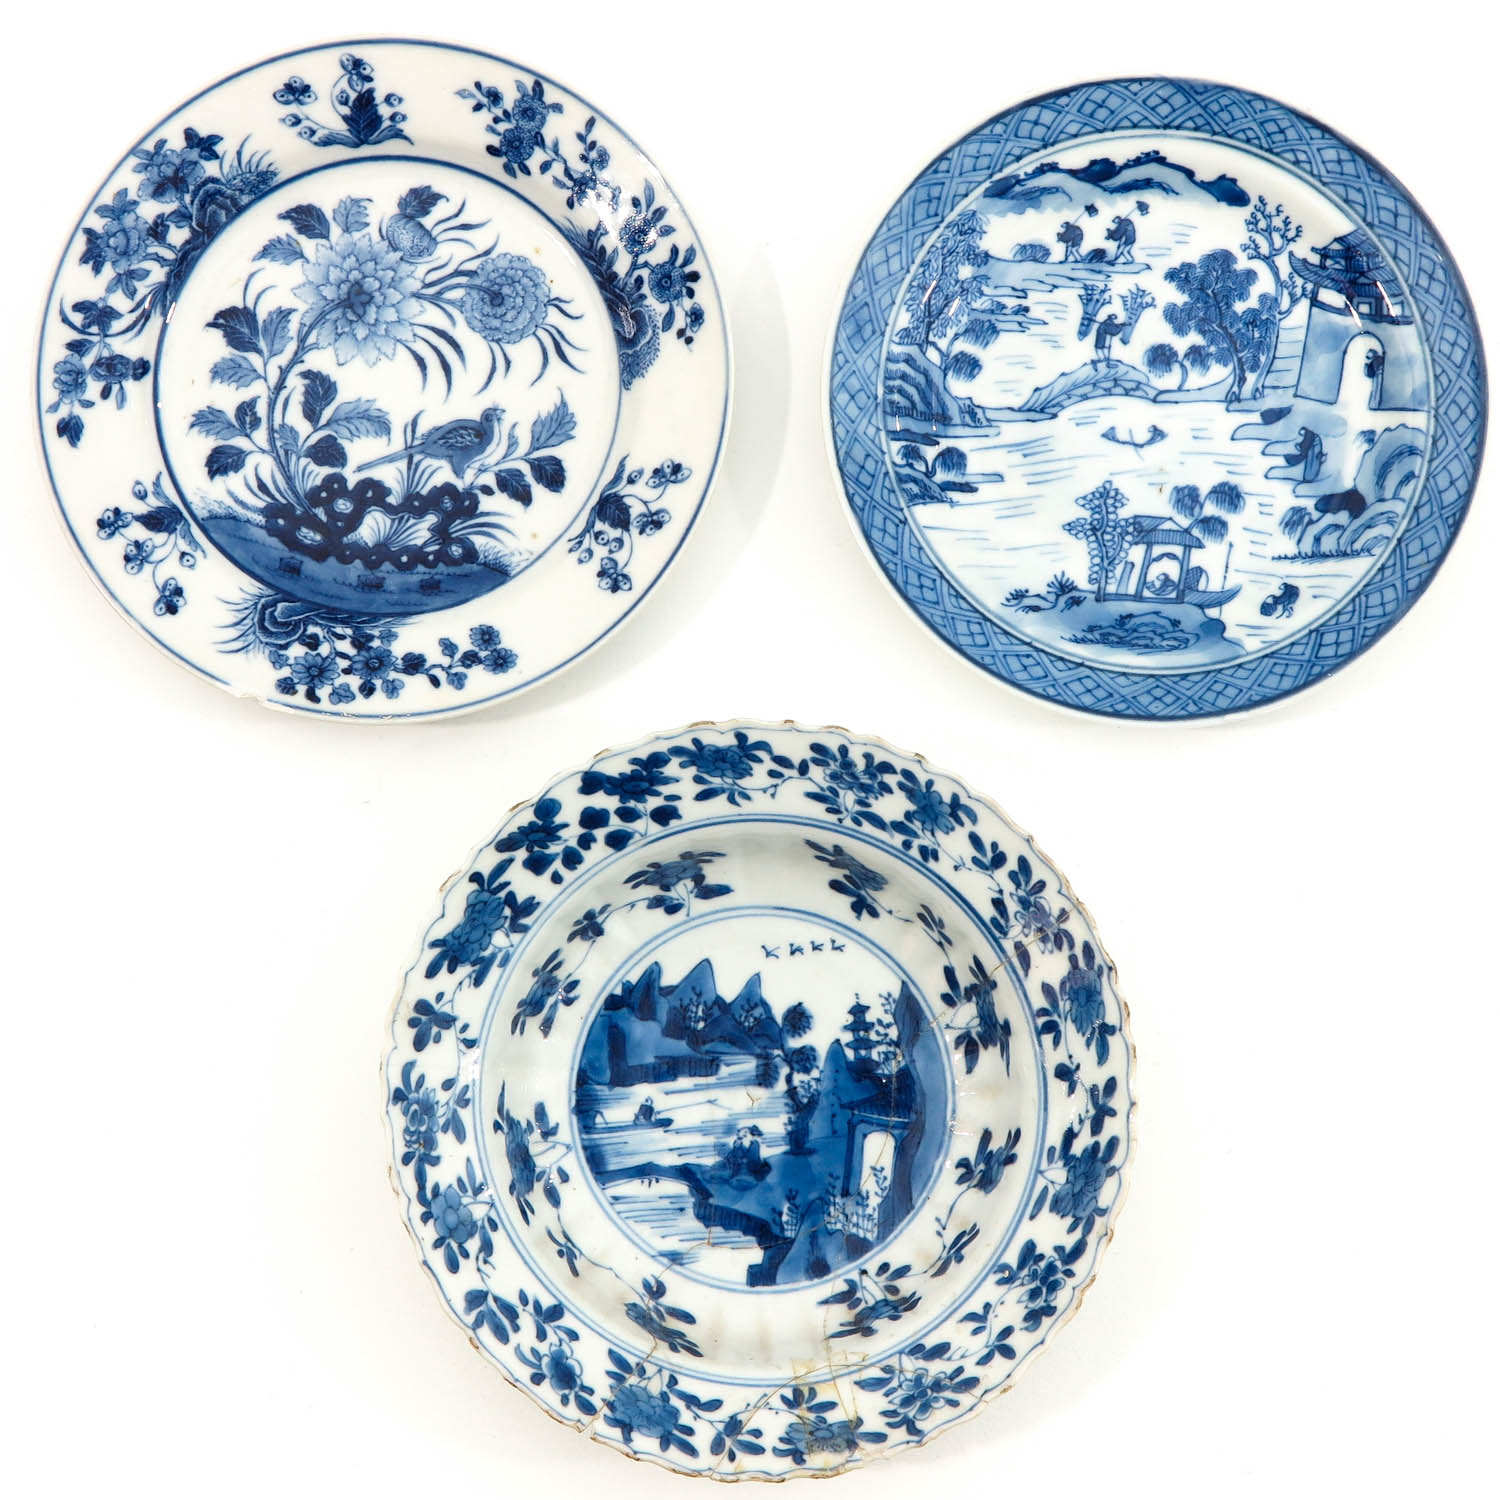 A Collection of 9 Blue and White Plates - Image 5 of 10